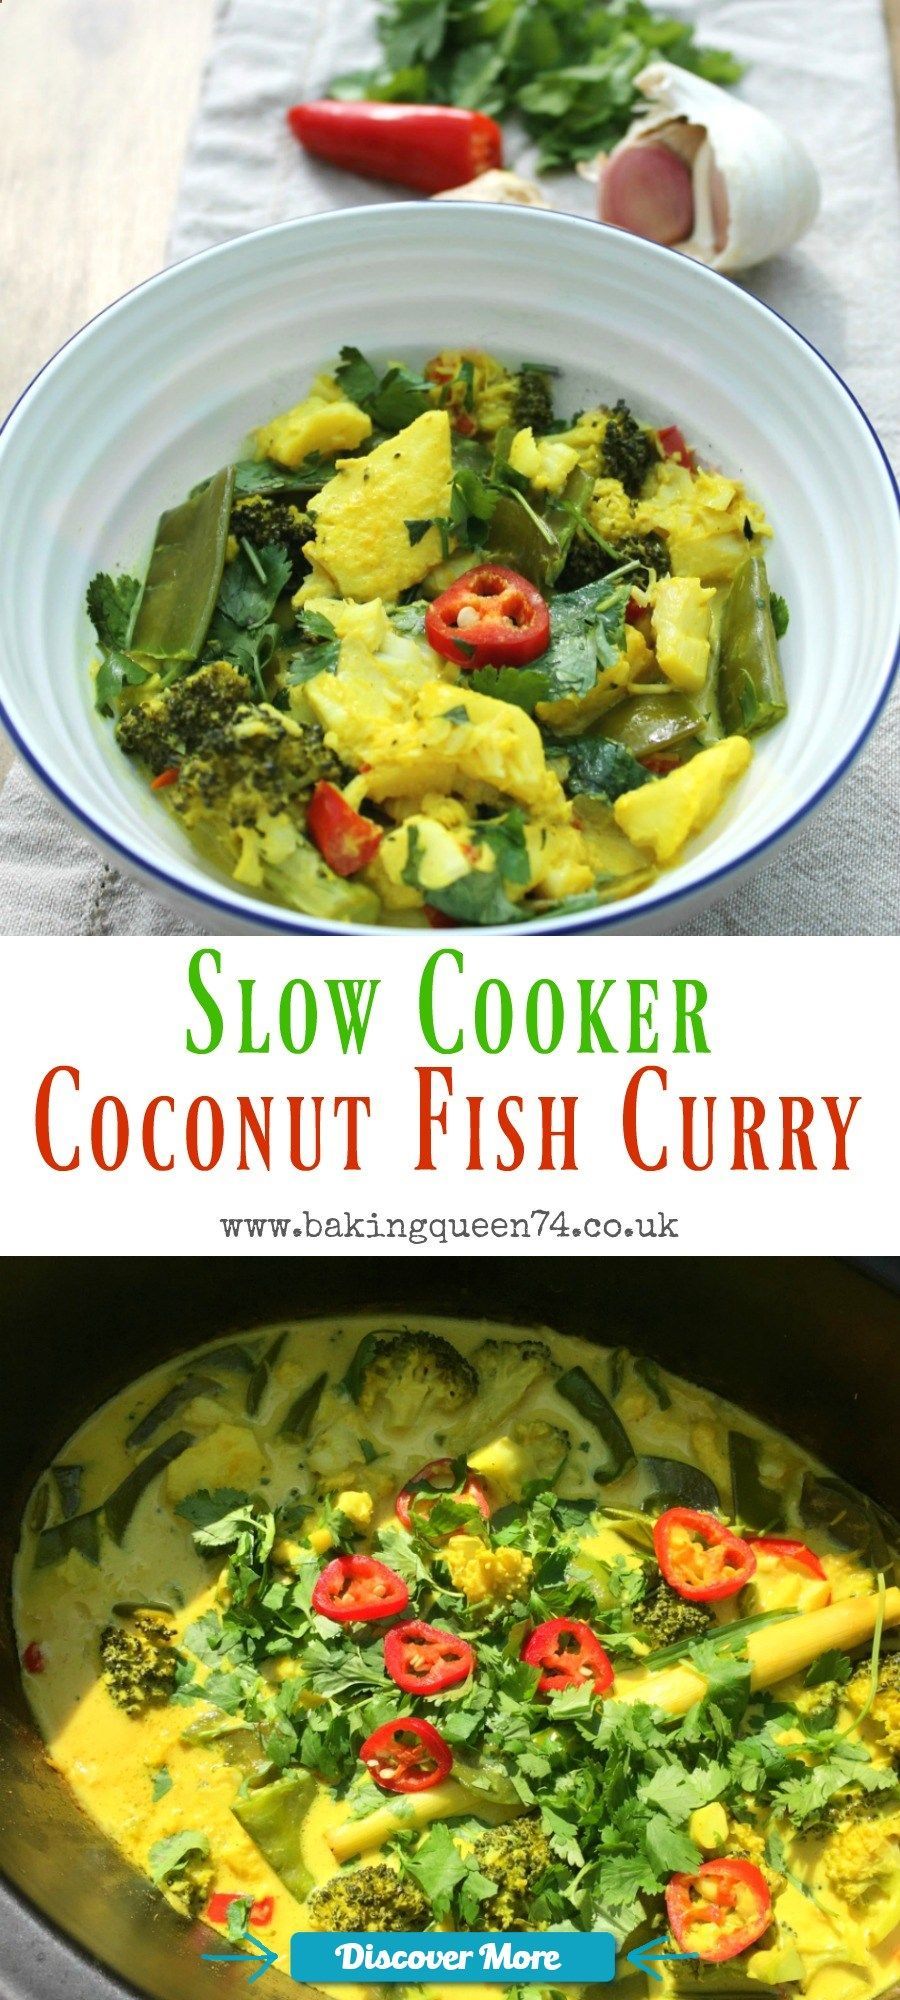 Slow cooker coconut fish curry - an easy to make dish, full of flavour, using your slow cooker #slowcooker #slowcook #slowcookerrecipes #slowcookerchicken